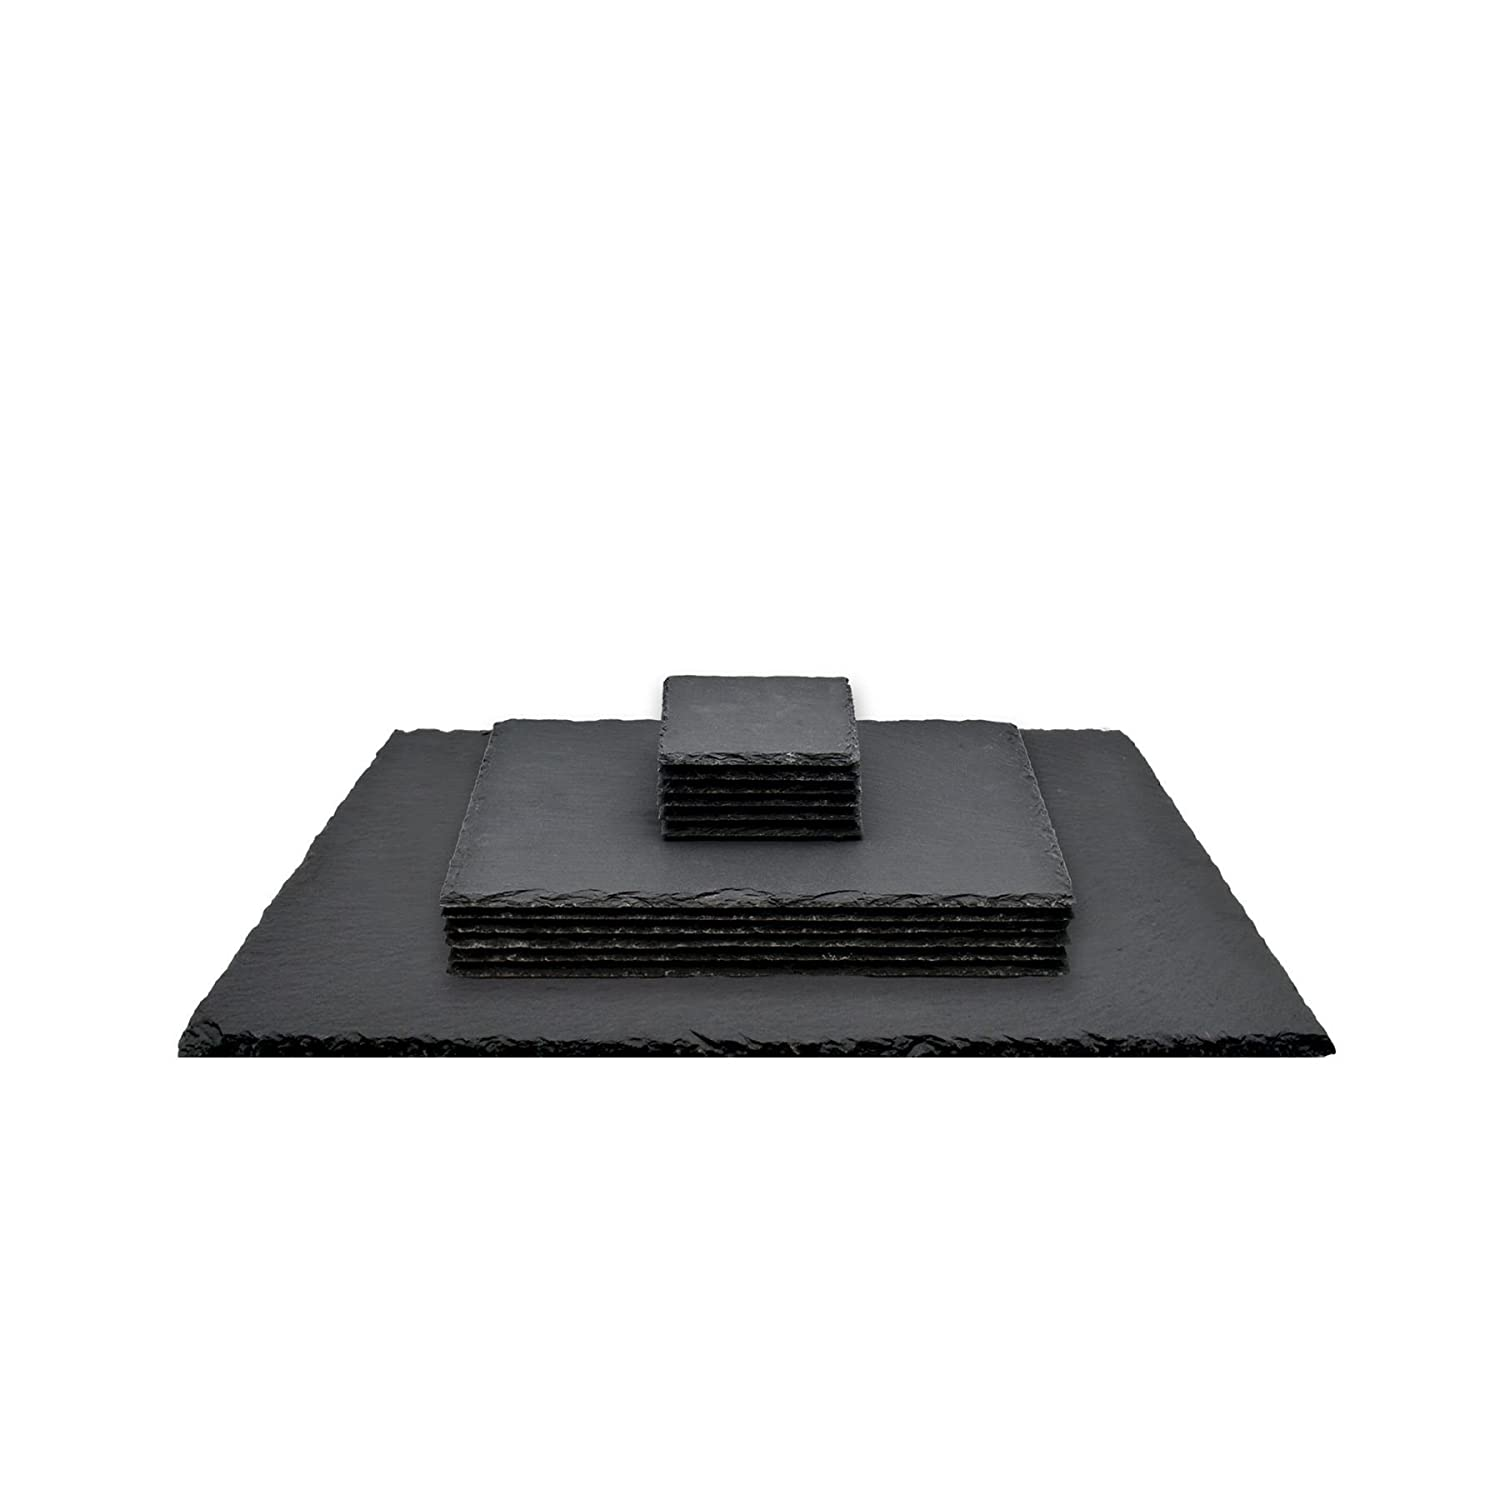 Argon Tableware Square/Rectangular Natural Slate Placemat Set - 6 Coasters, 6 Placemats and Table Runner/Serving Platter